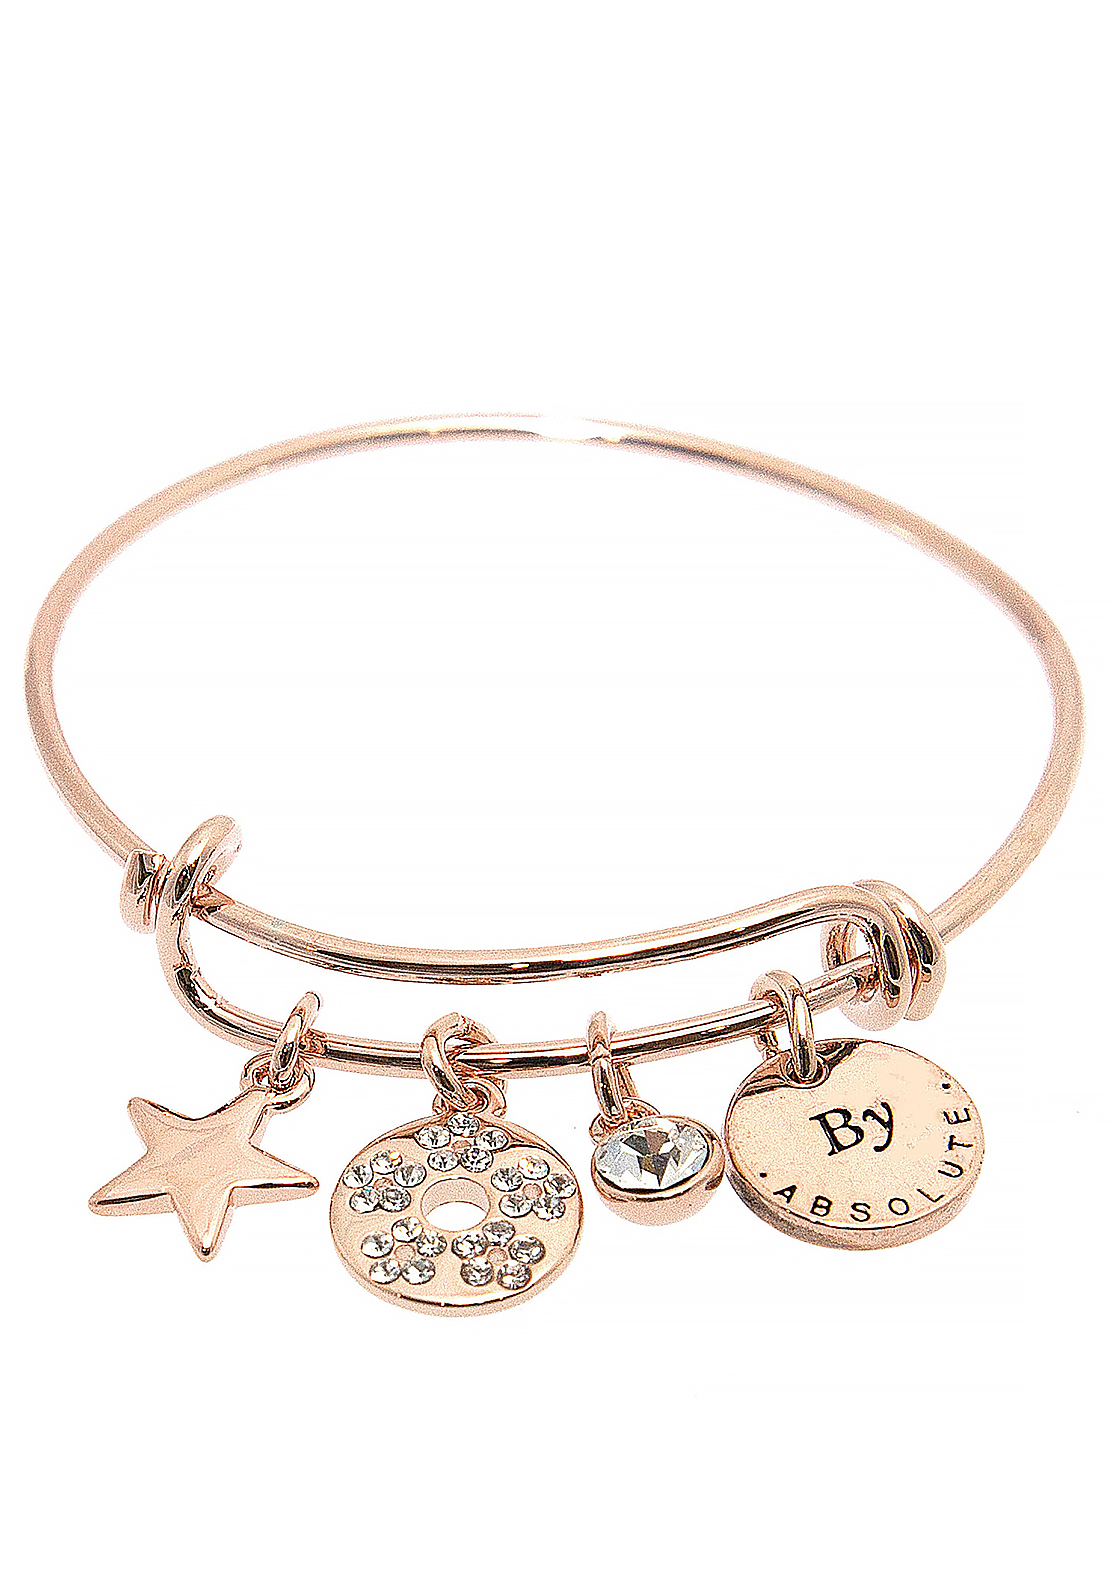 Absolute Jewellery Girls April Charm Bangle, Rose Gold